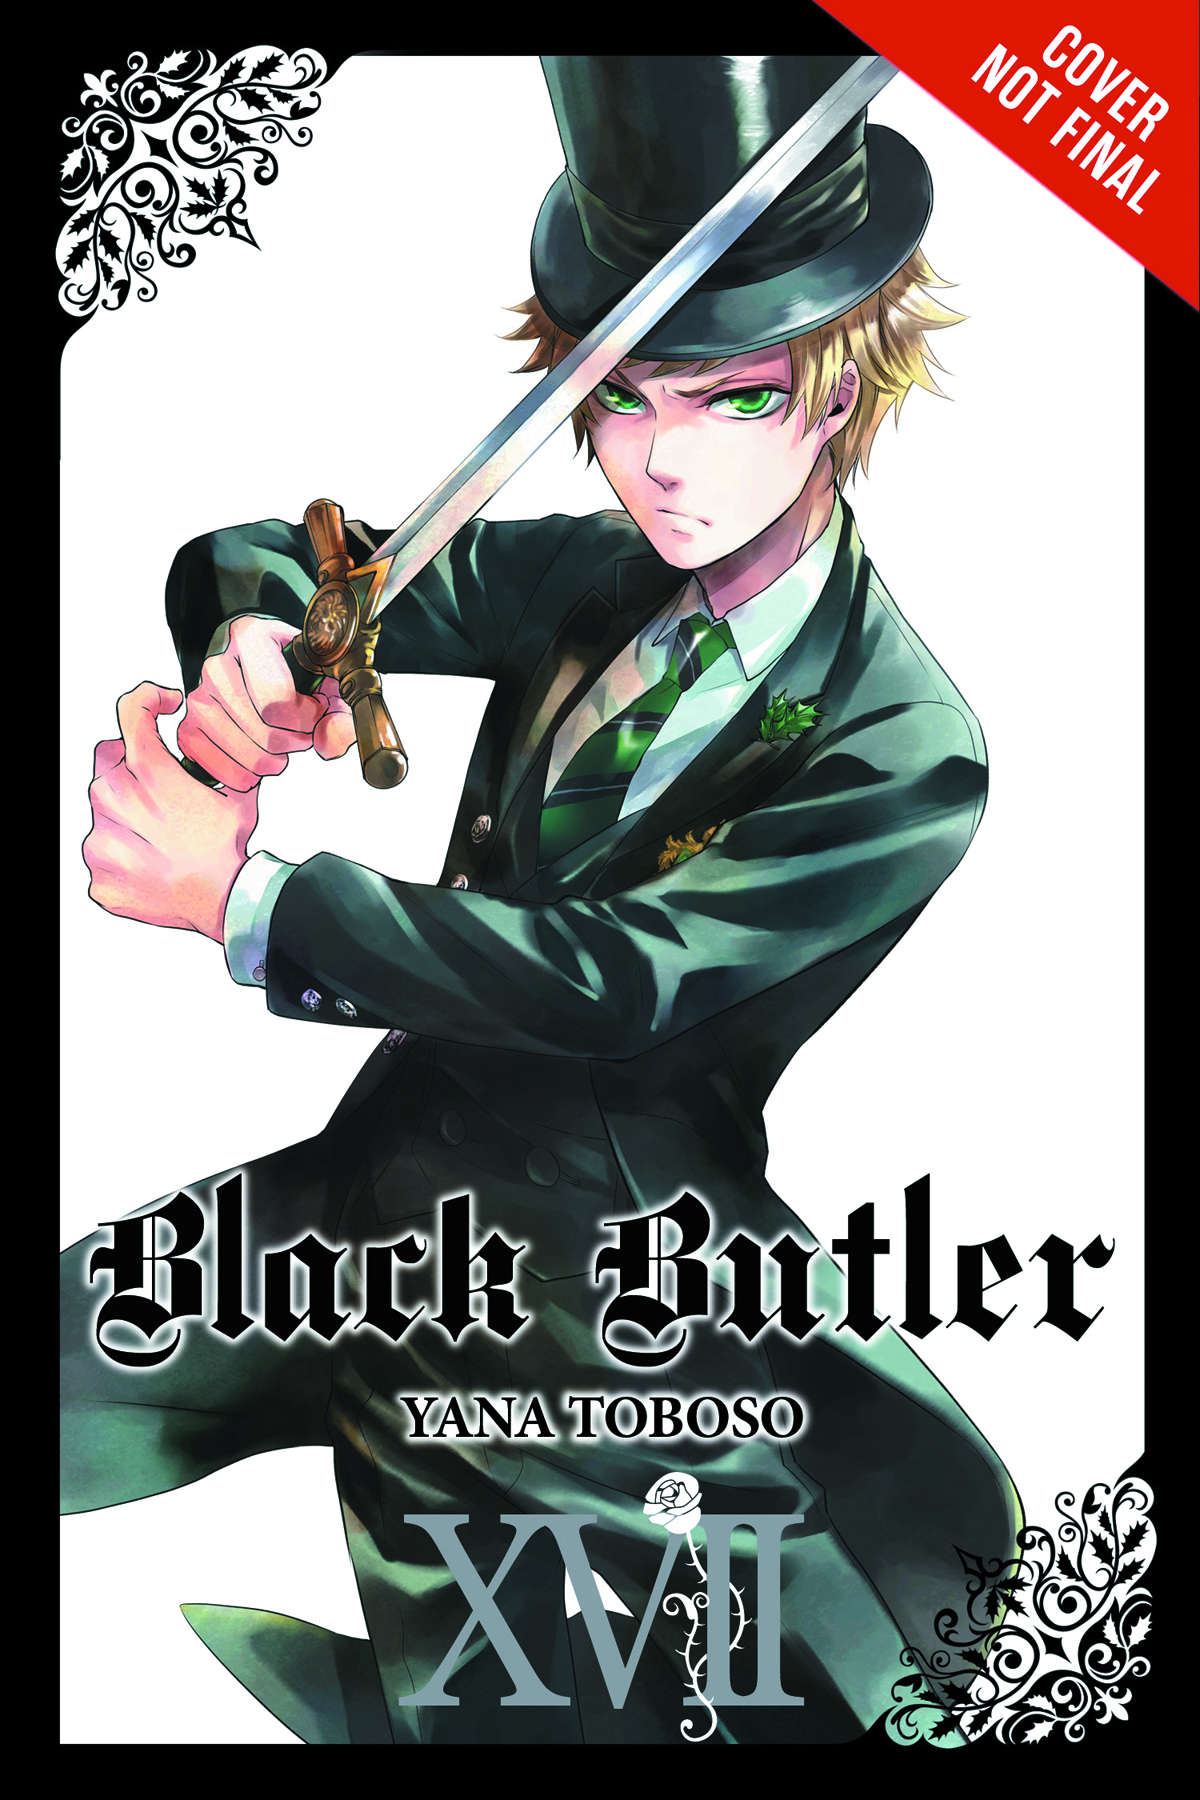 BLACK BUTLER GN VOL 17